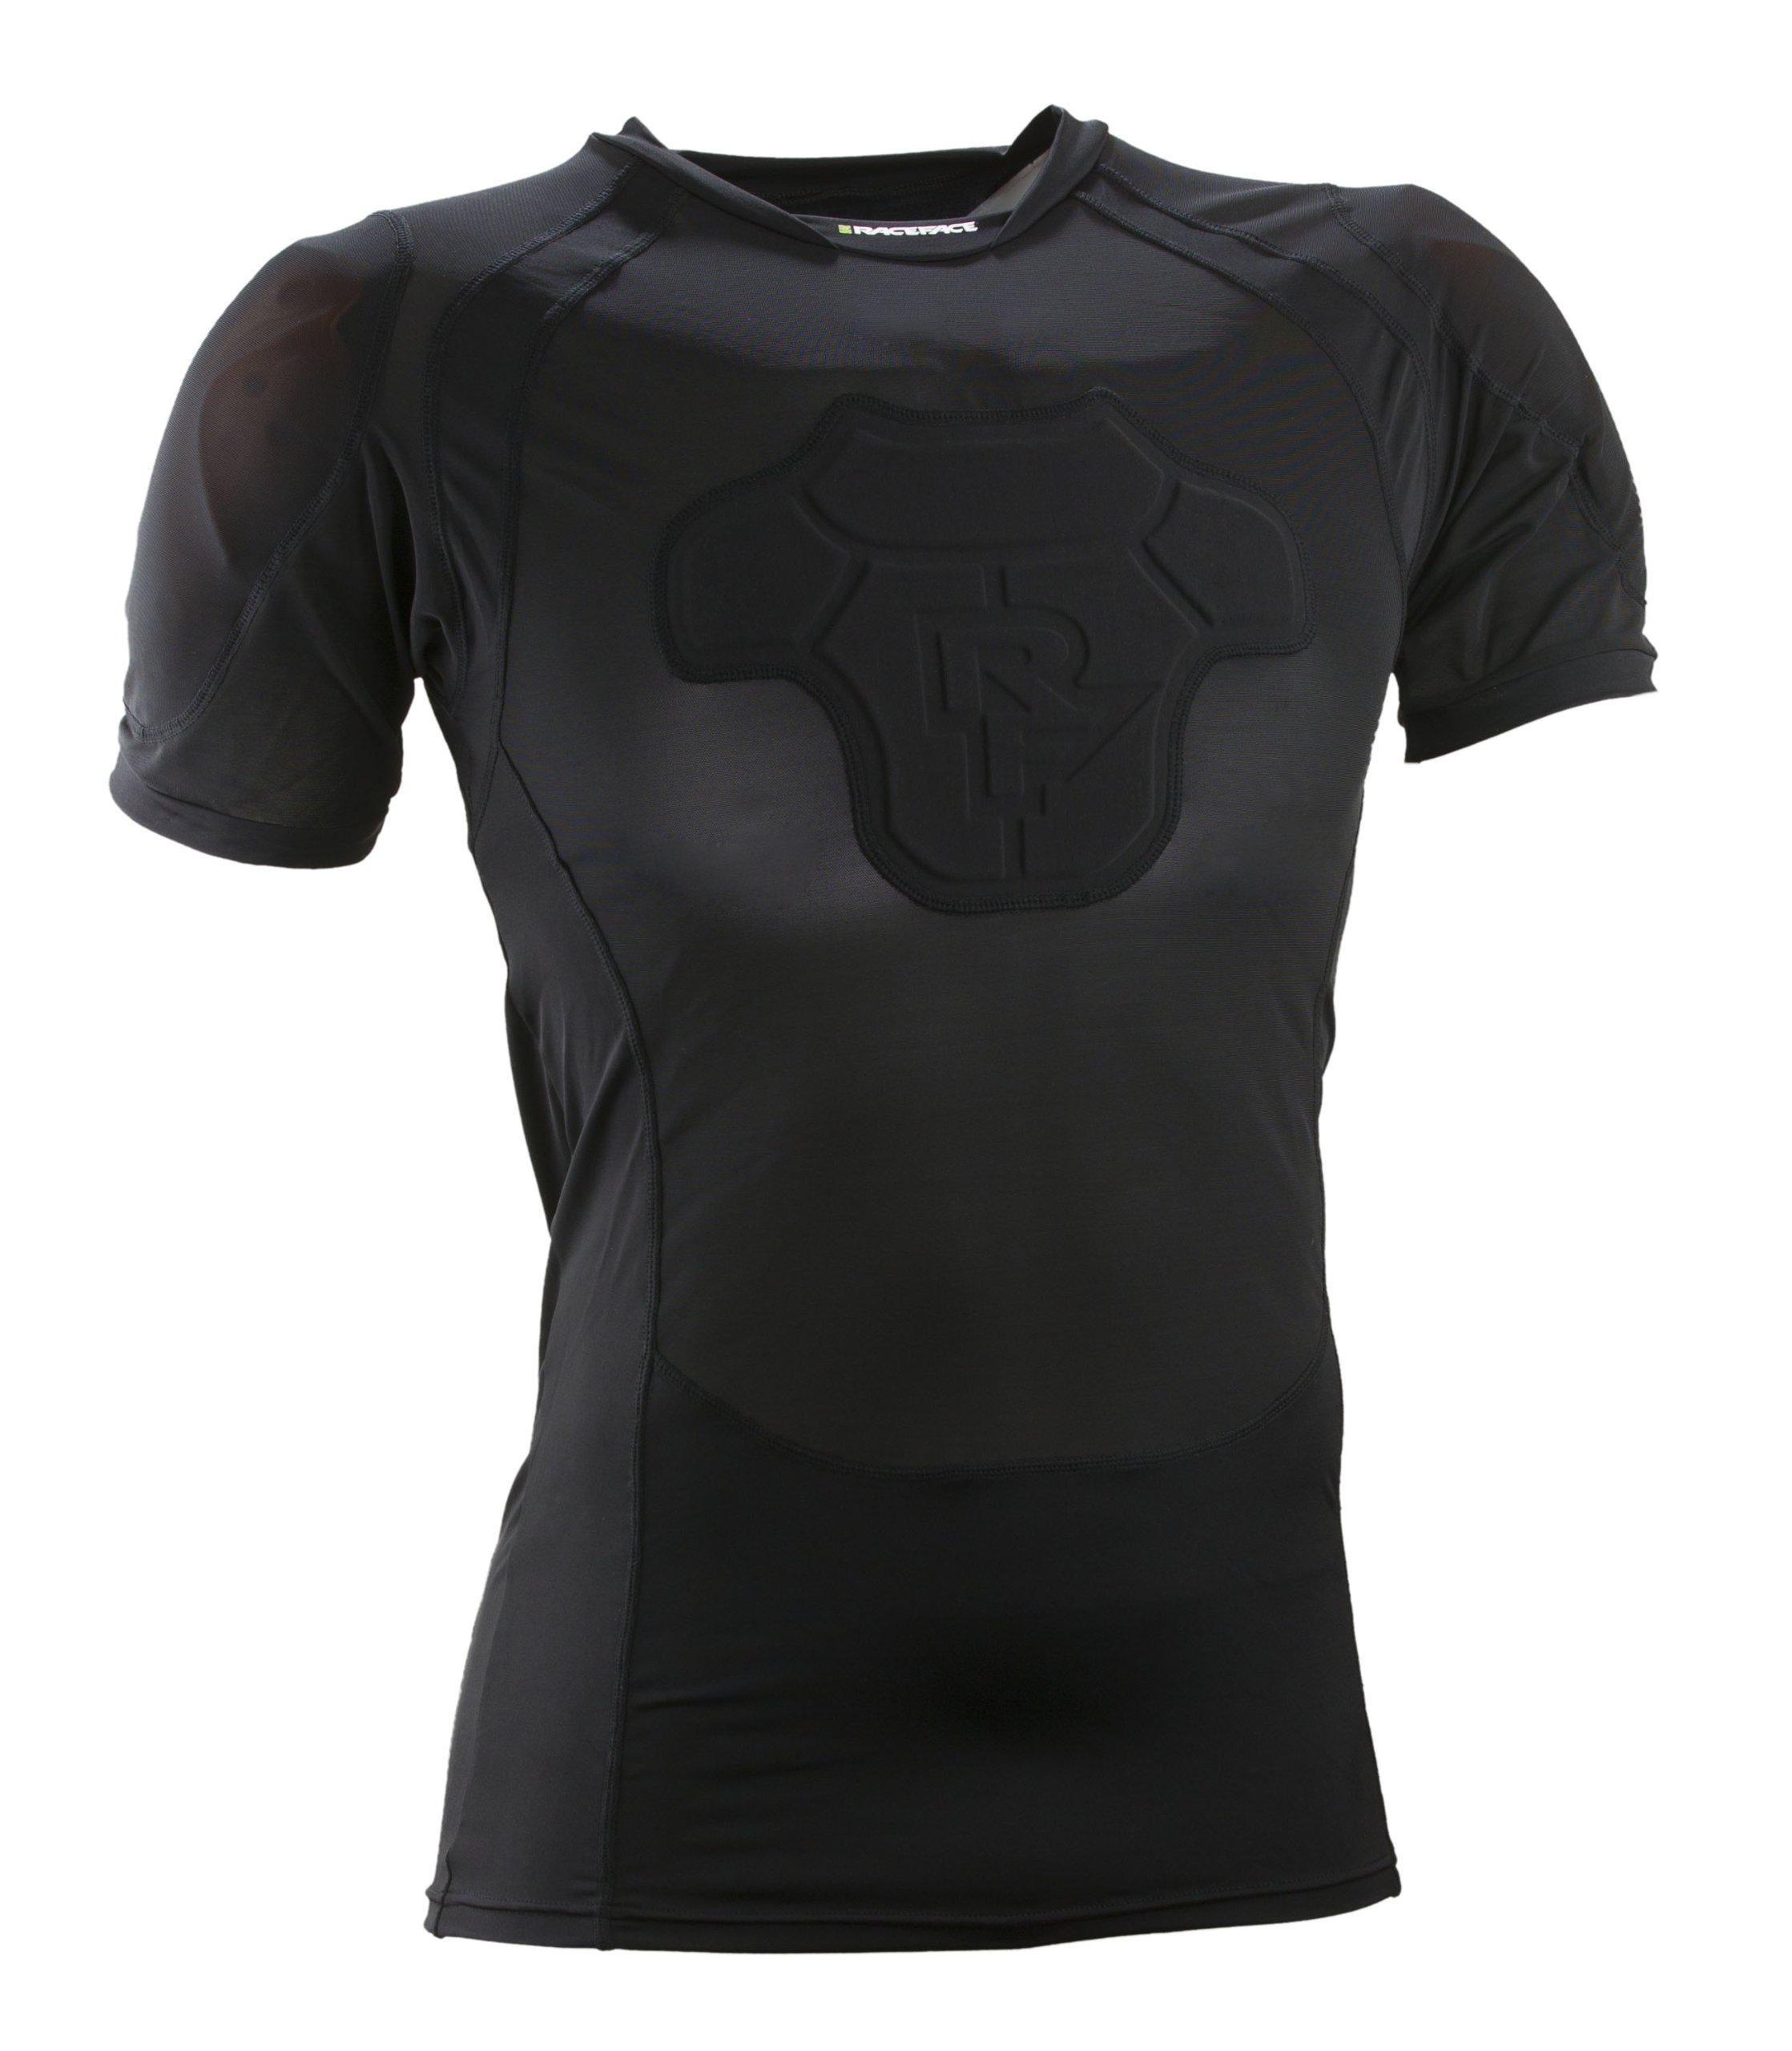 RaceFace Flank Core Guard, Stealth, Large